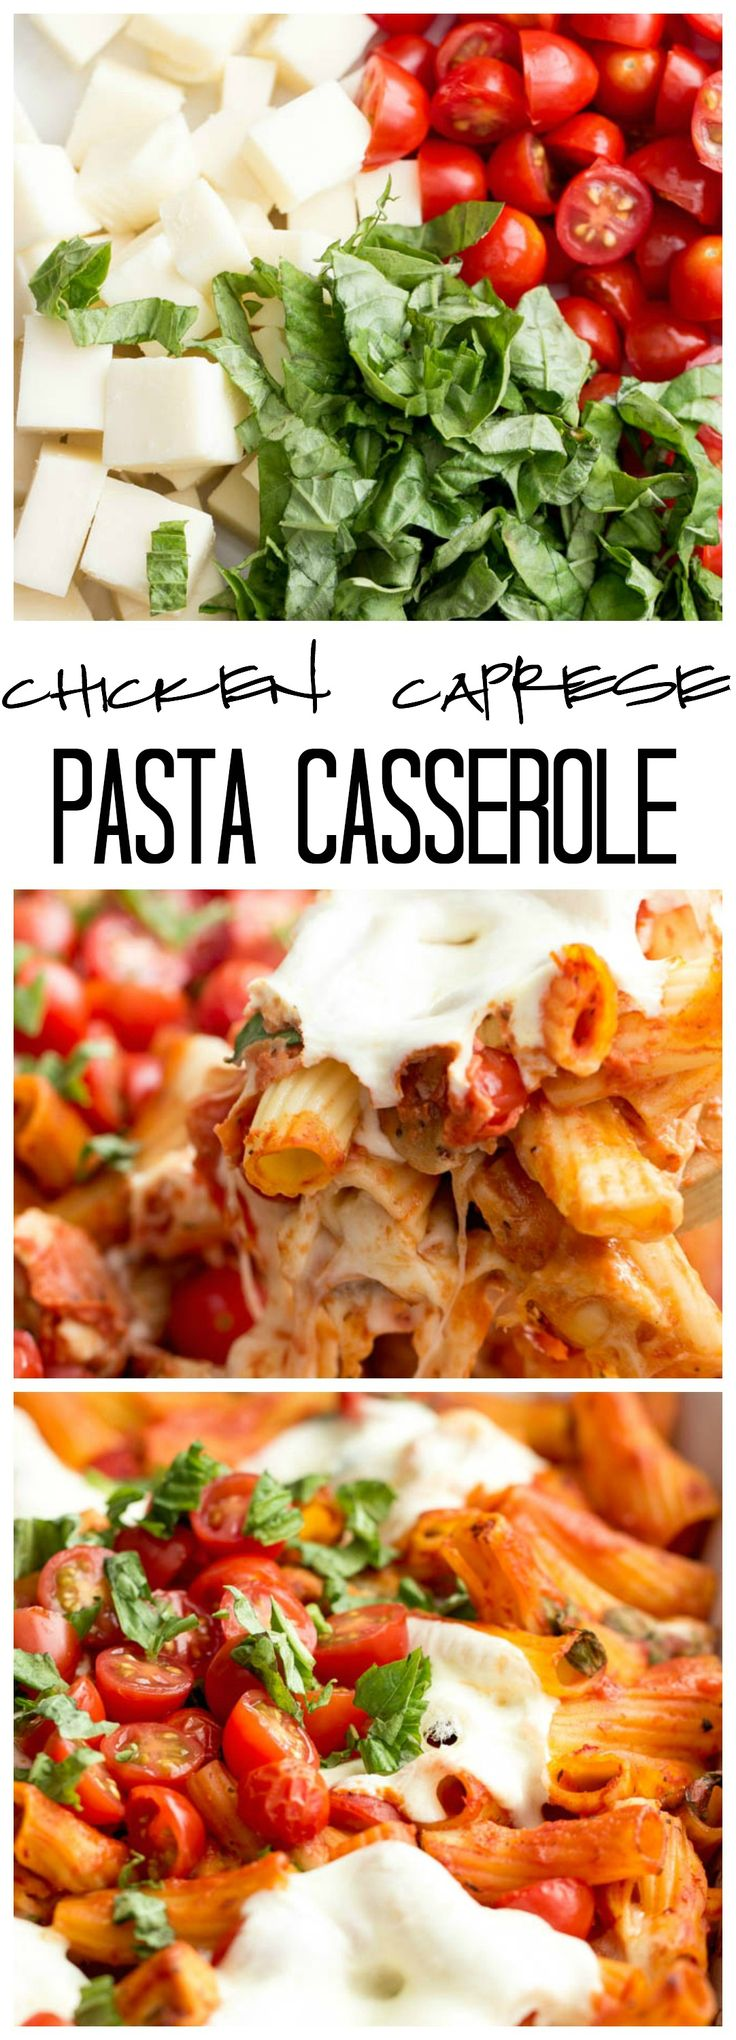 Chicken Caprese Pasta Casserole is combined with all of the amazing flavors of Caprese and is packed with gooey gooey cheese! This will be a FAVORITE!